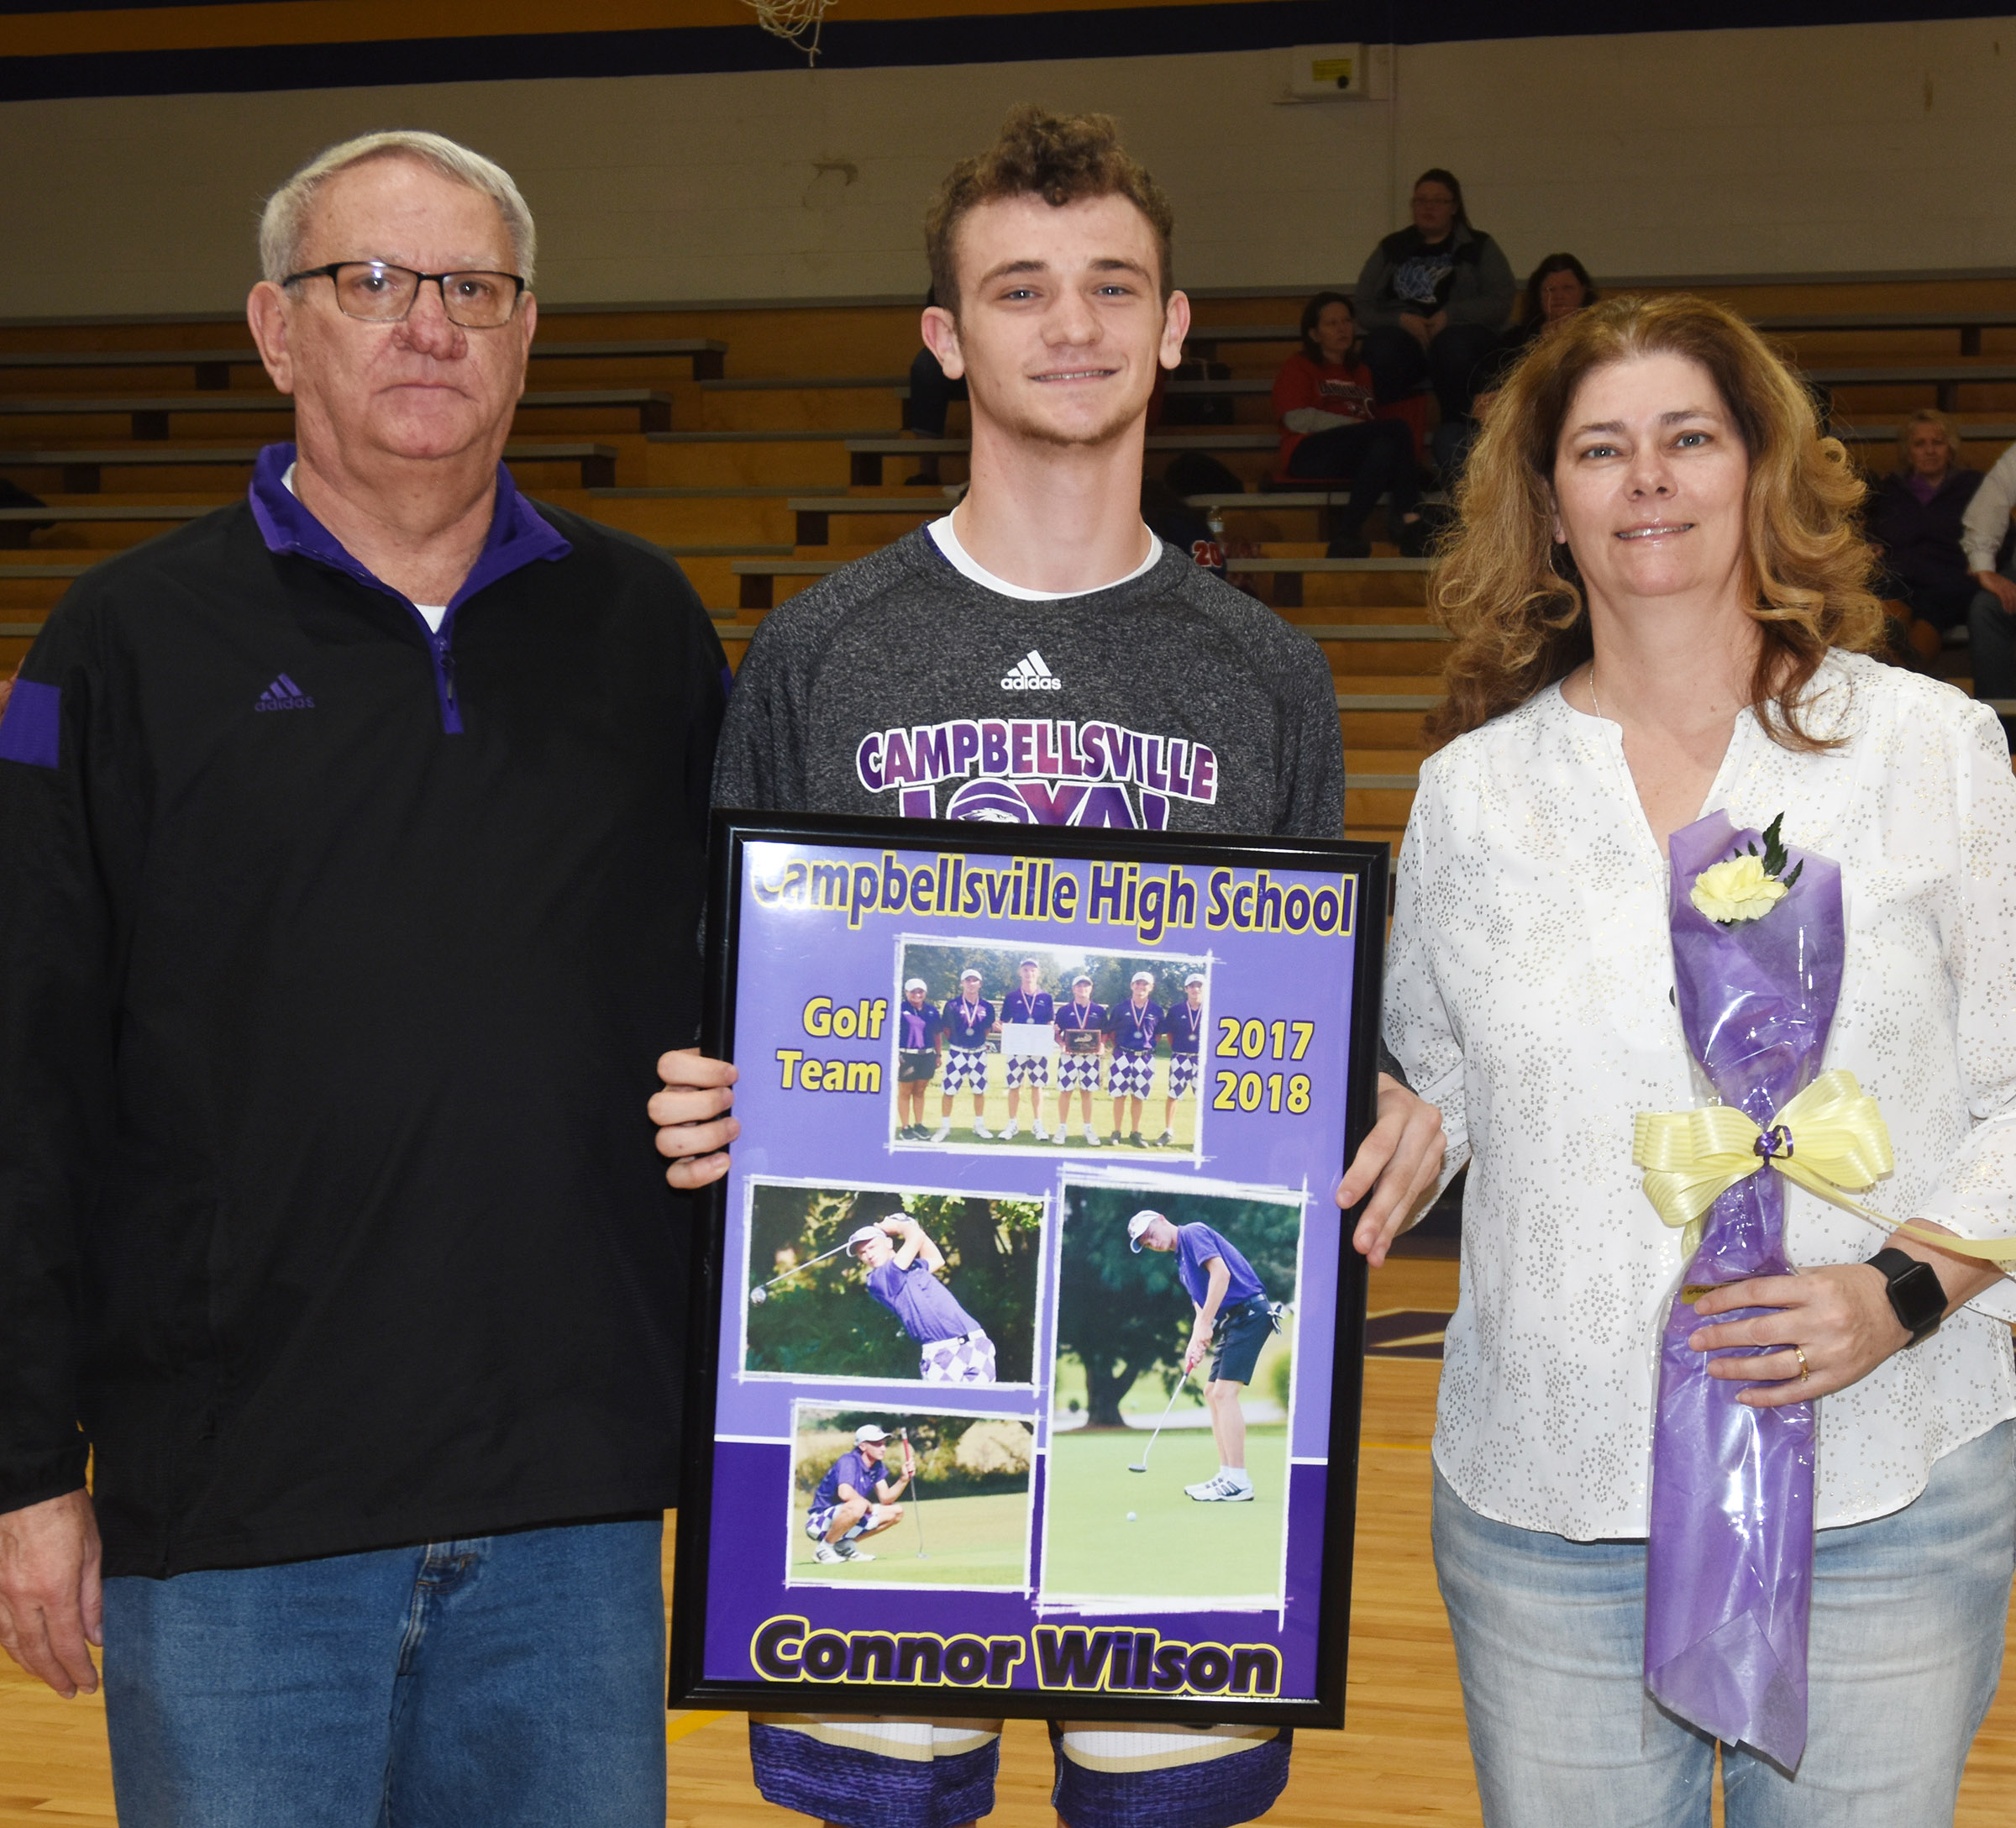 CHS senior golf player Connor Wilson is honored. He is pictured with his parents, Rick and Tammy Wilson.